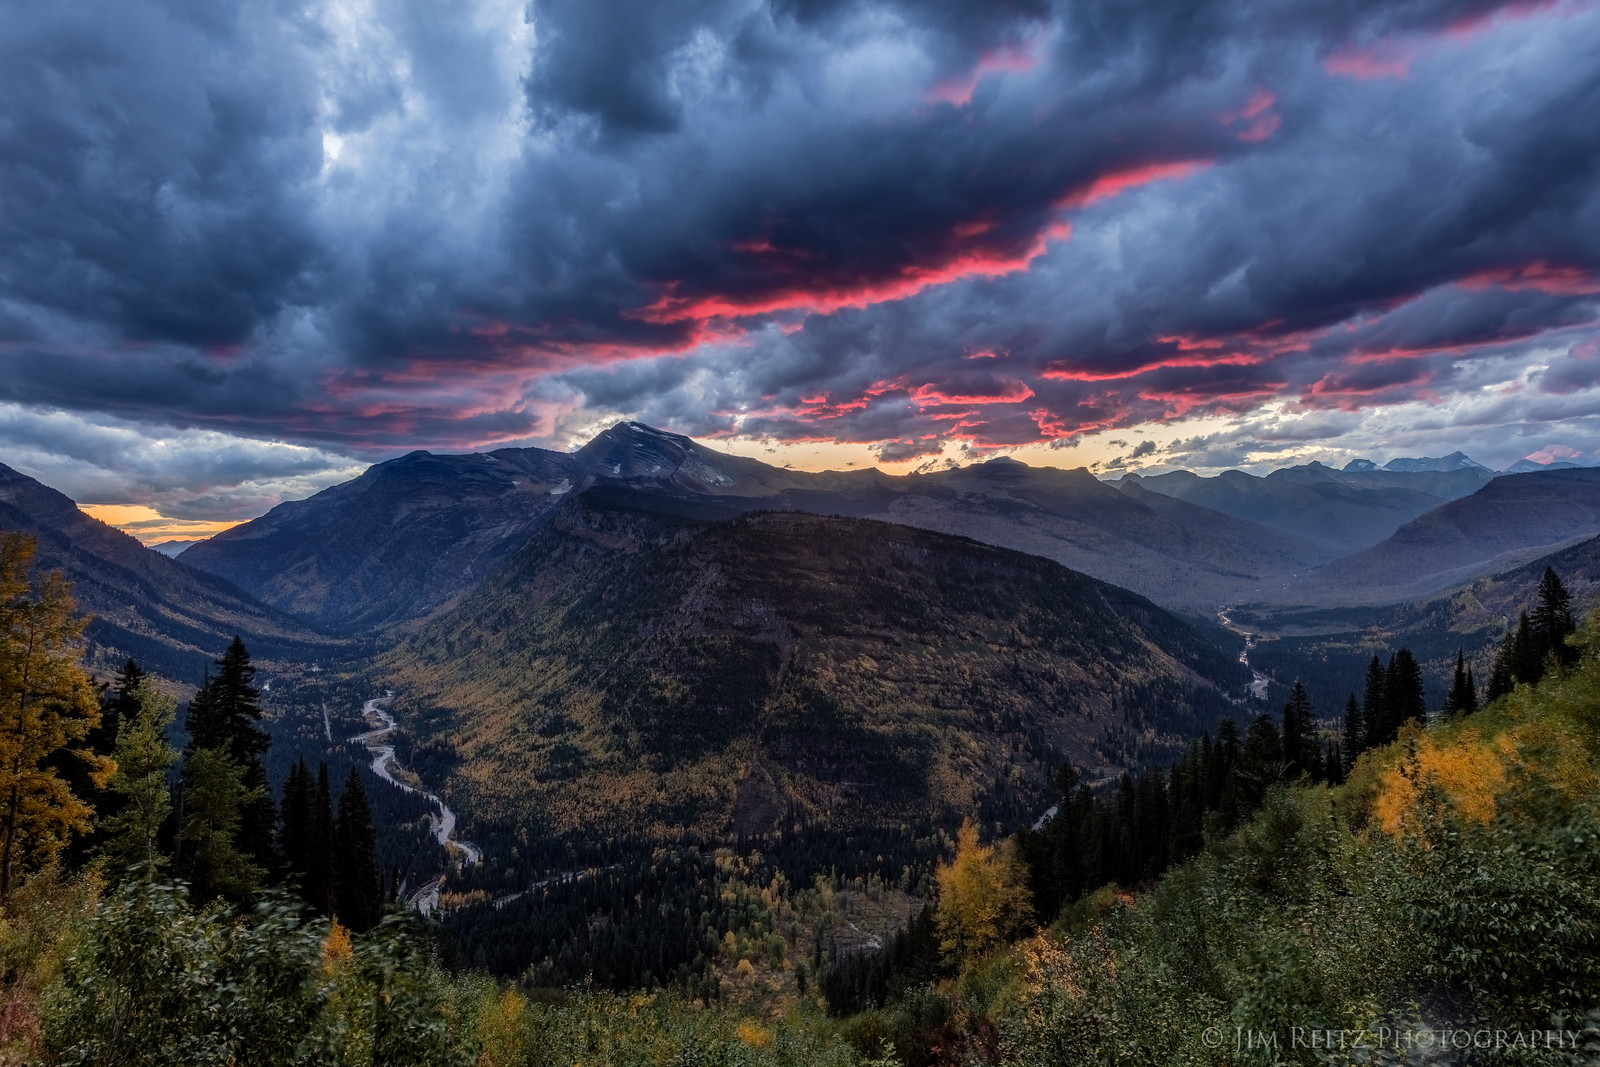 Sunset shot from Going-to-the-Sun Road in Glacier National Park, Montana.